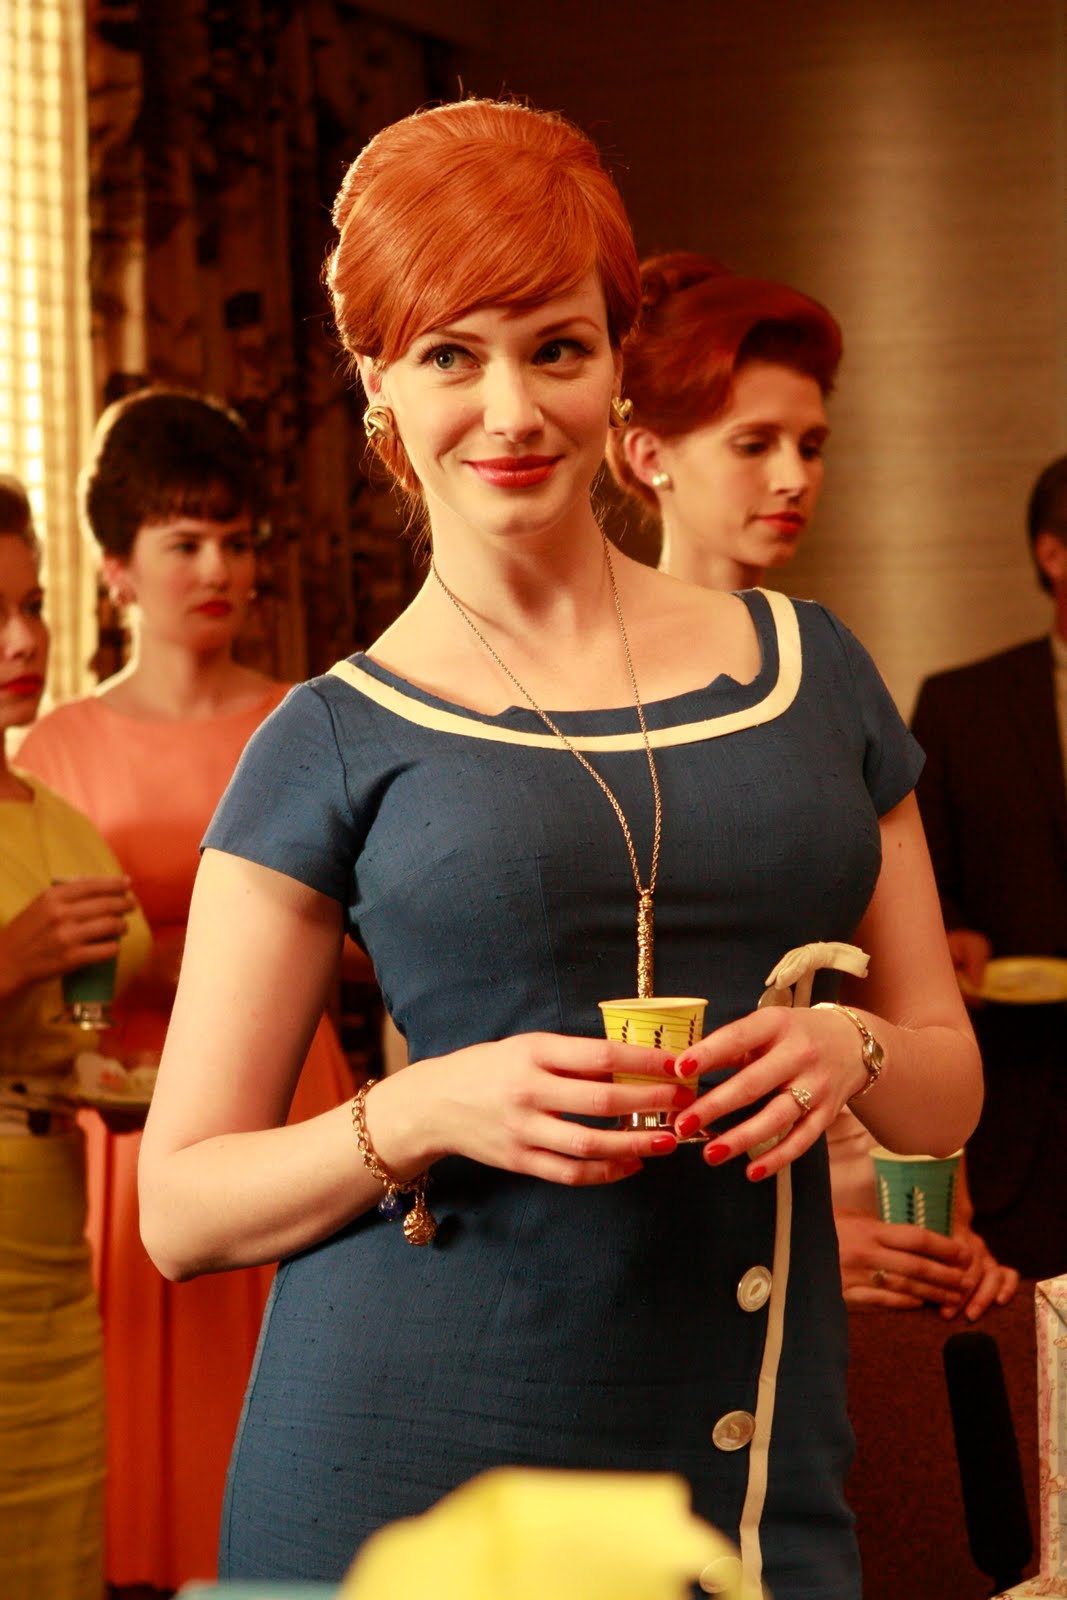 Joan Holloway made my day. – Kristen Obaid